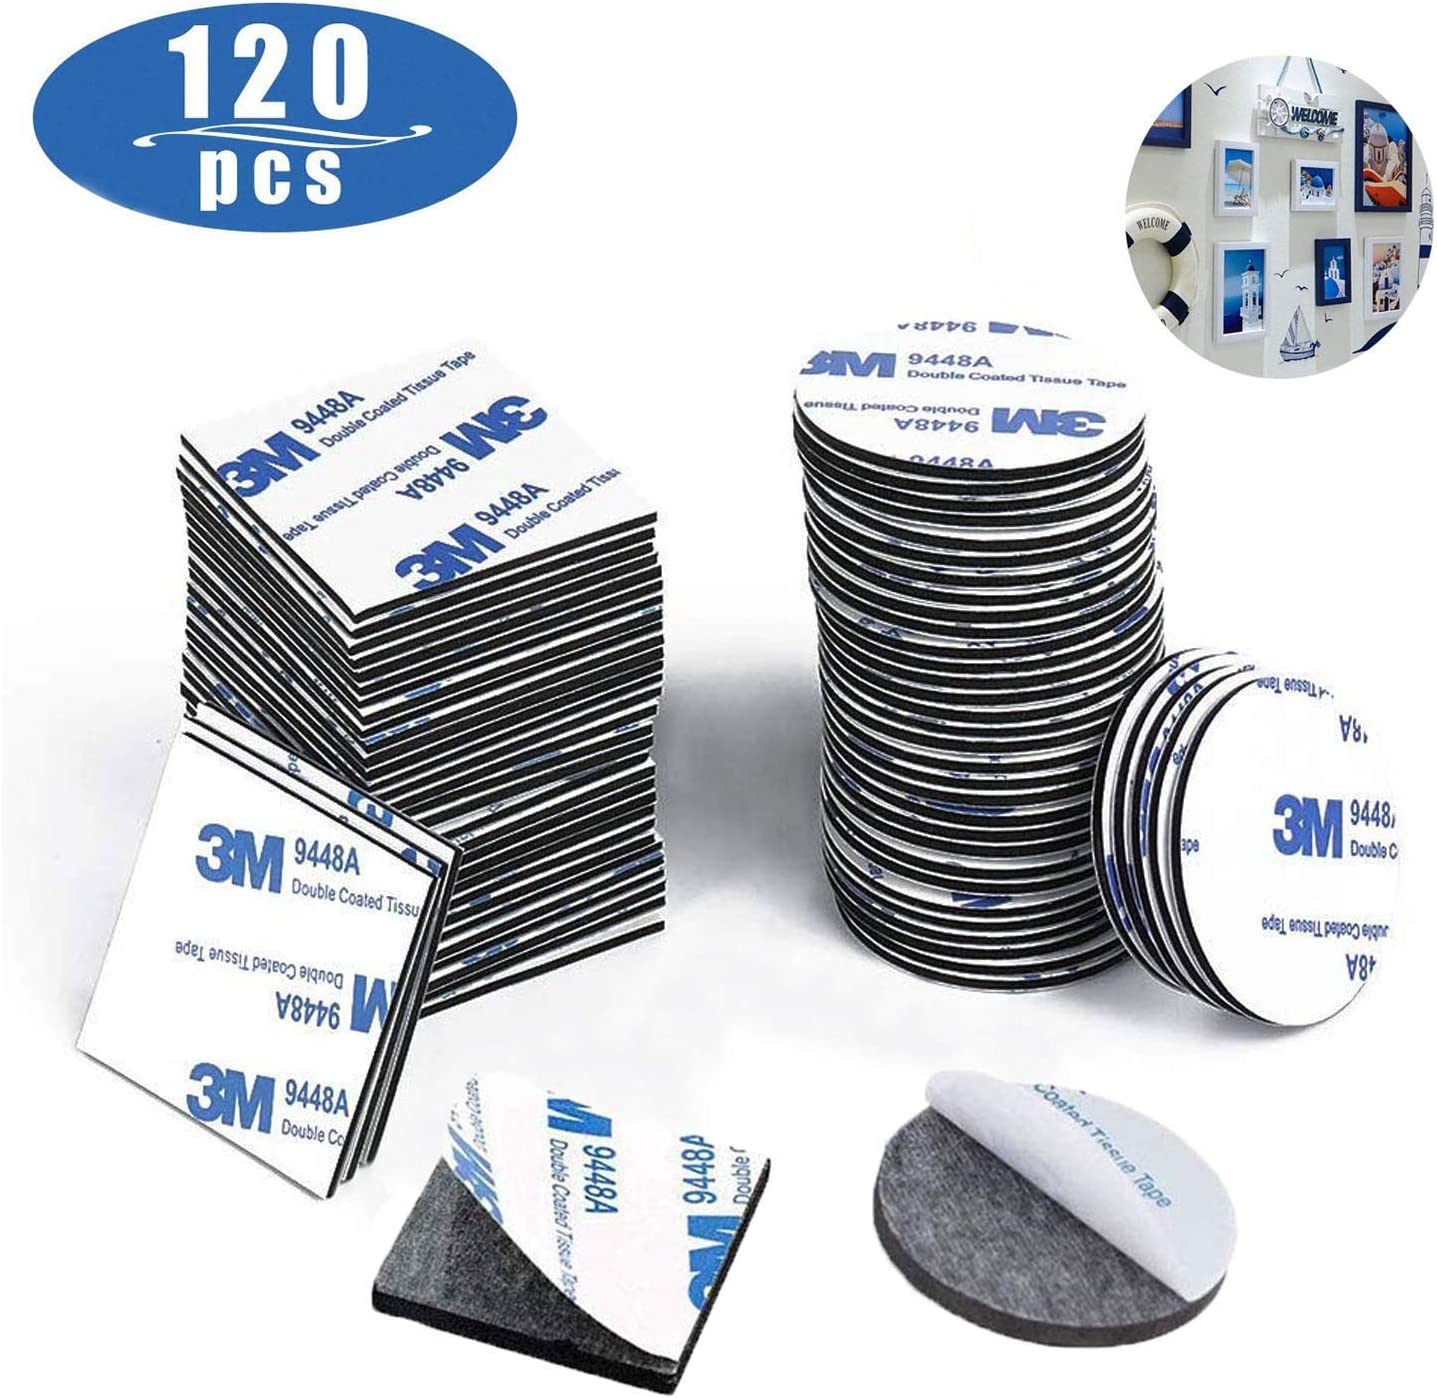 120 Pieces Squares and Round Extra Strong Adhesive Mounting Pads Stickers Foam Tape Metals Door LIZHIGE Double Sided Sticky Pads Black Plastics Glasses Stick on Self Adhesive for Walls and Floor